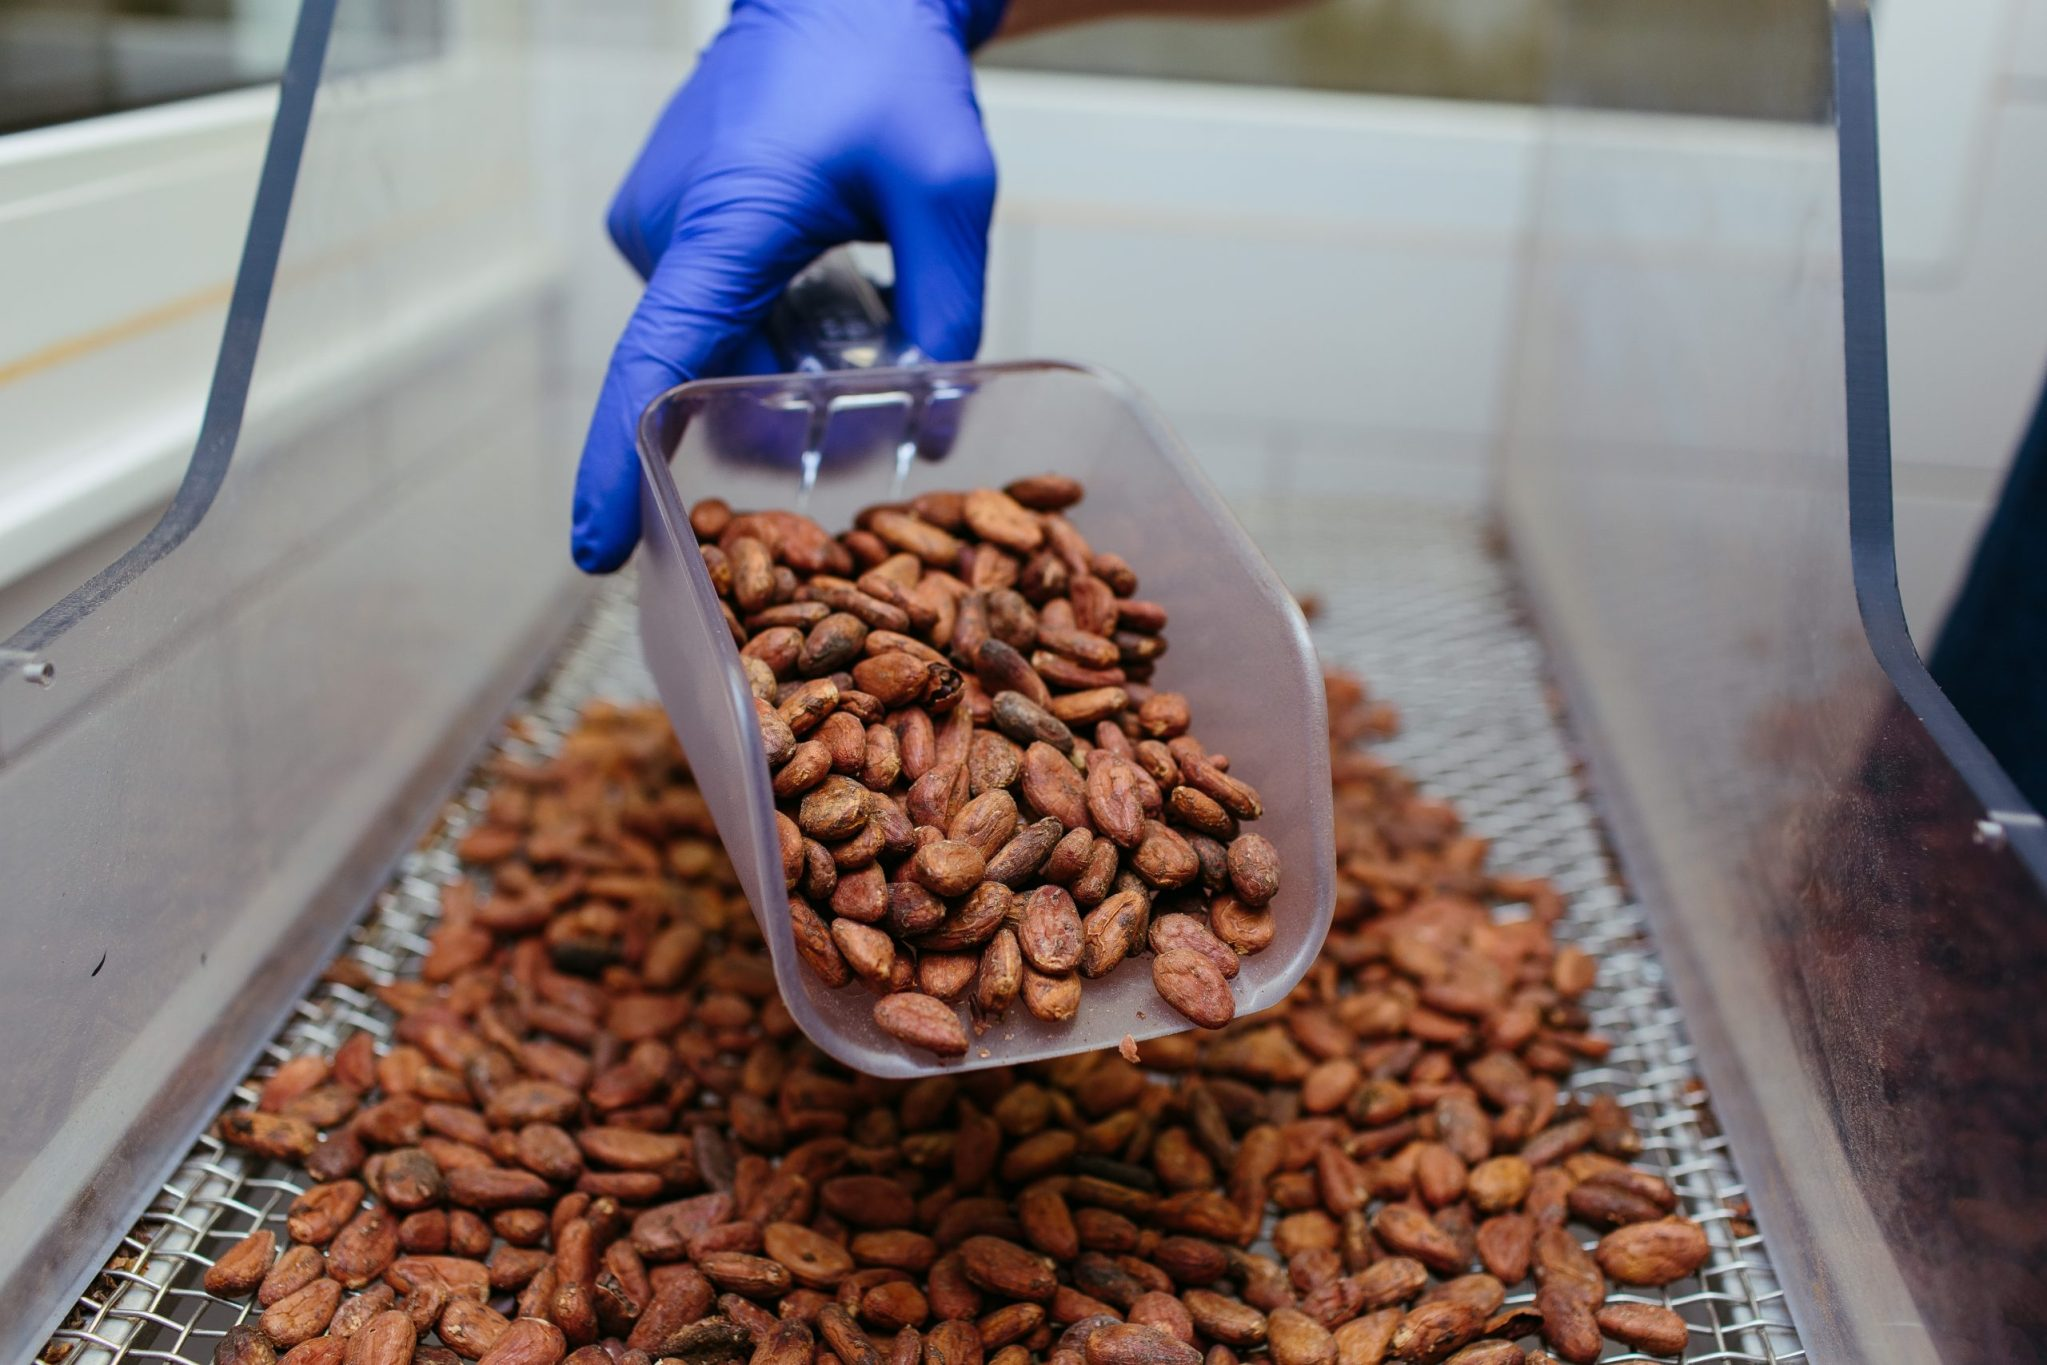 Brown coffee beans in white plastic container